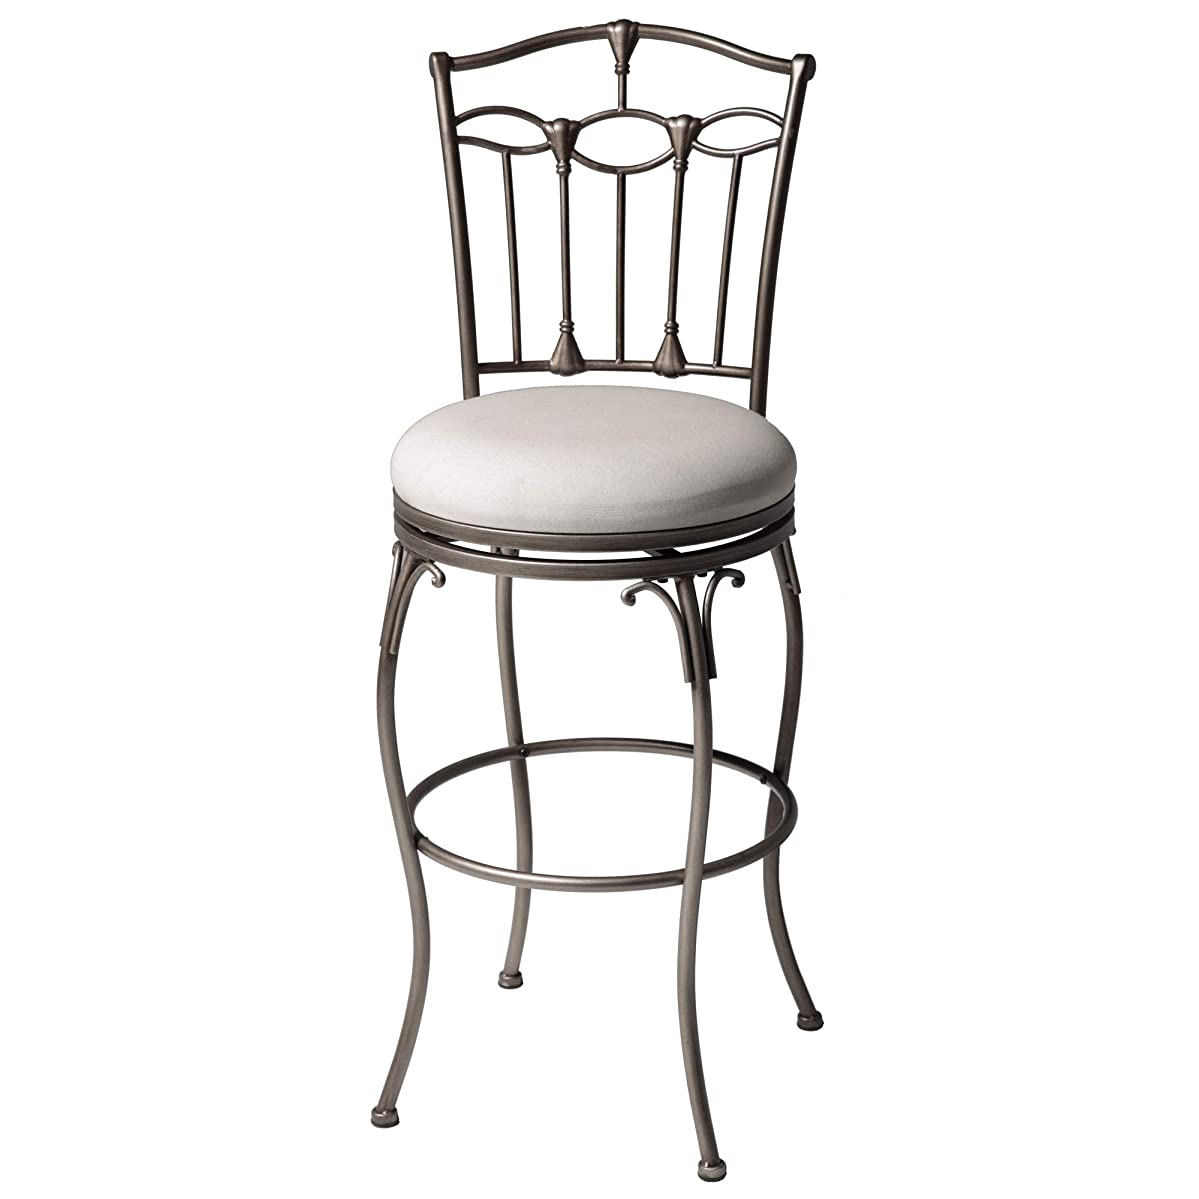 Leggett & Platt Concord Swivel Seat Bar Stool with Brushed Bronze Finished Metal Frame, Detailed Seatback and Linen Upholstery, 30-Inch Seat Height